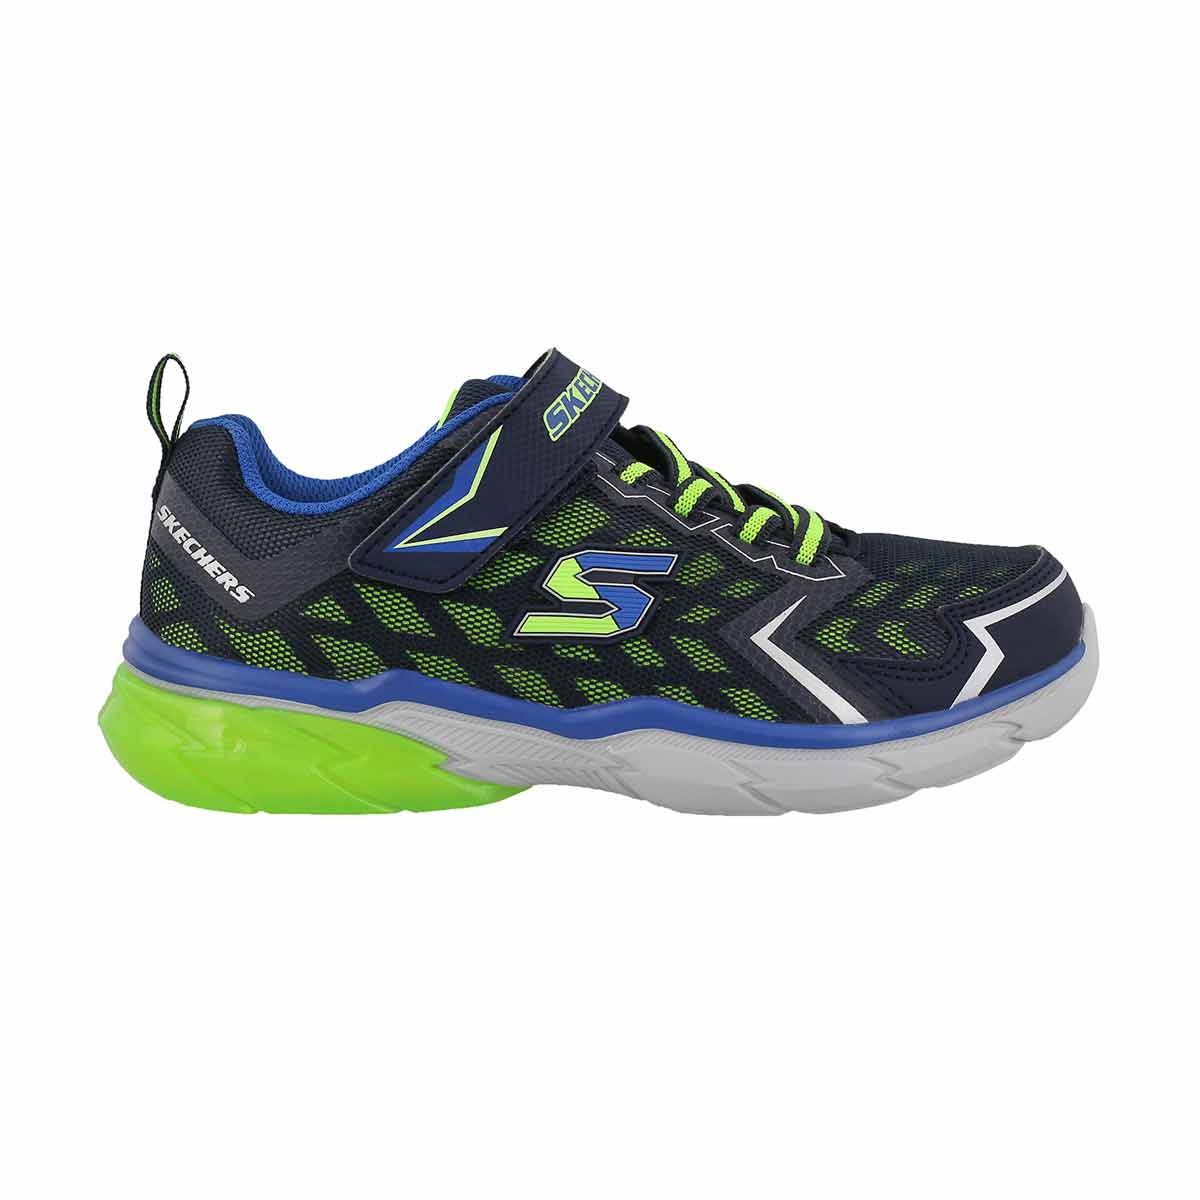 Bys Thermoflux NanoGrid nvy/lime sneaker